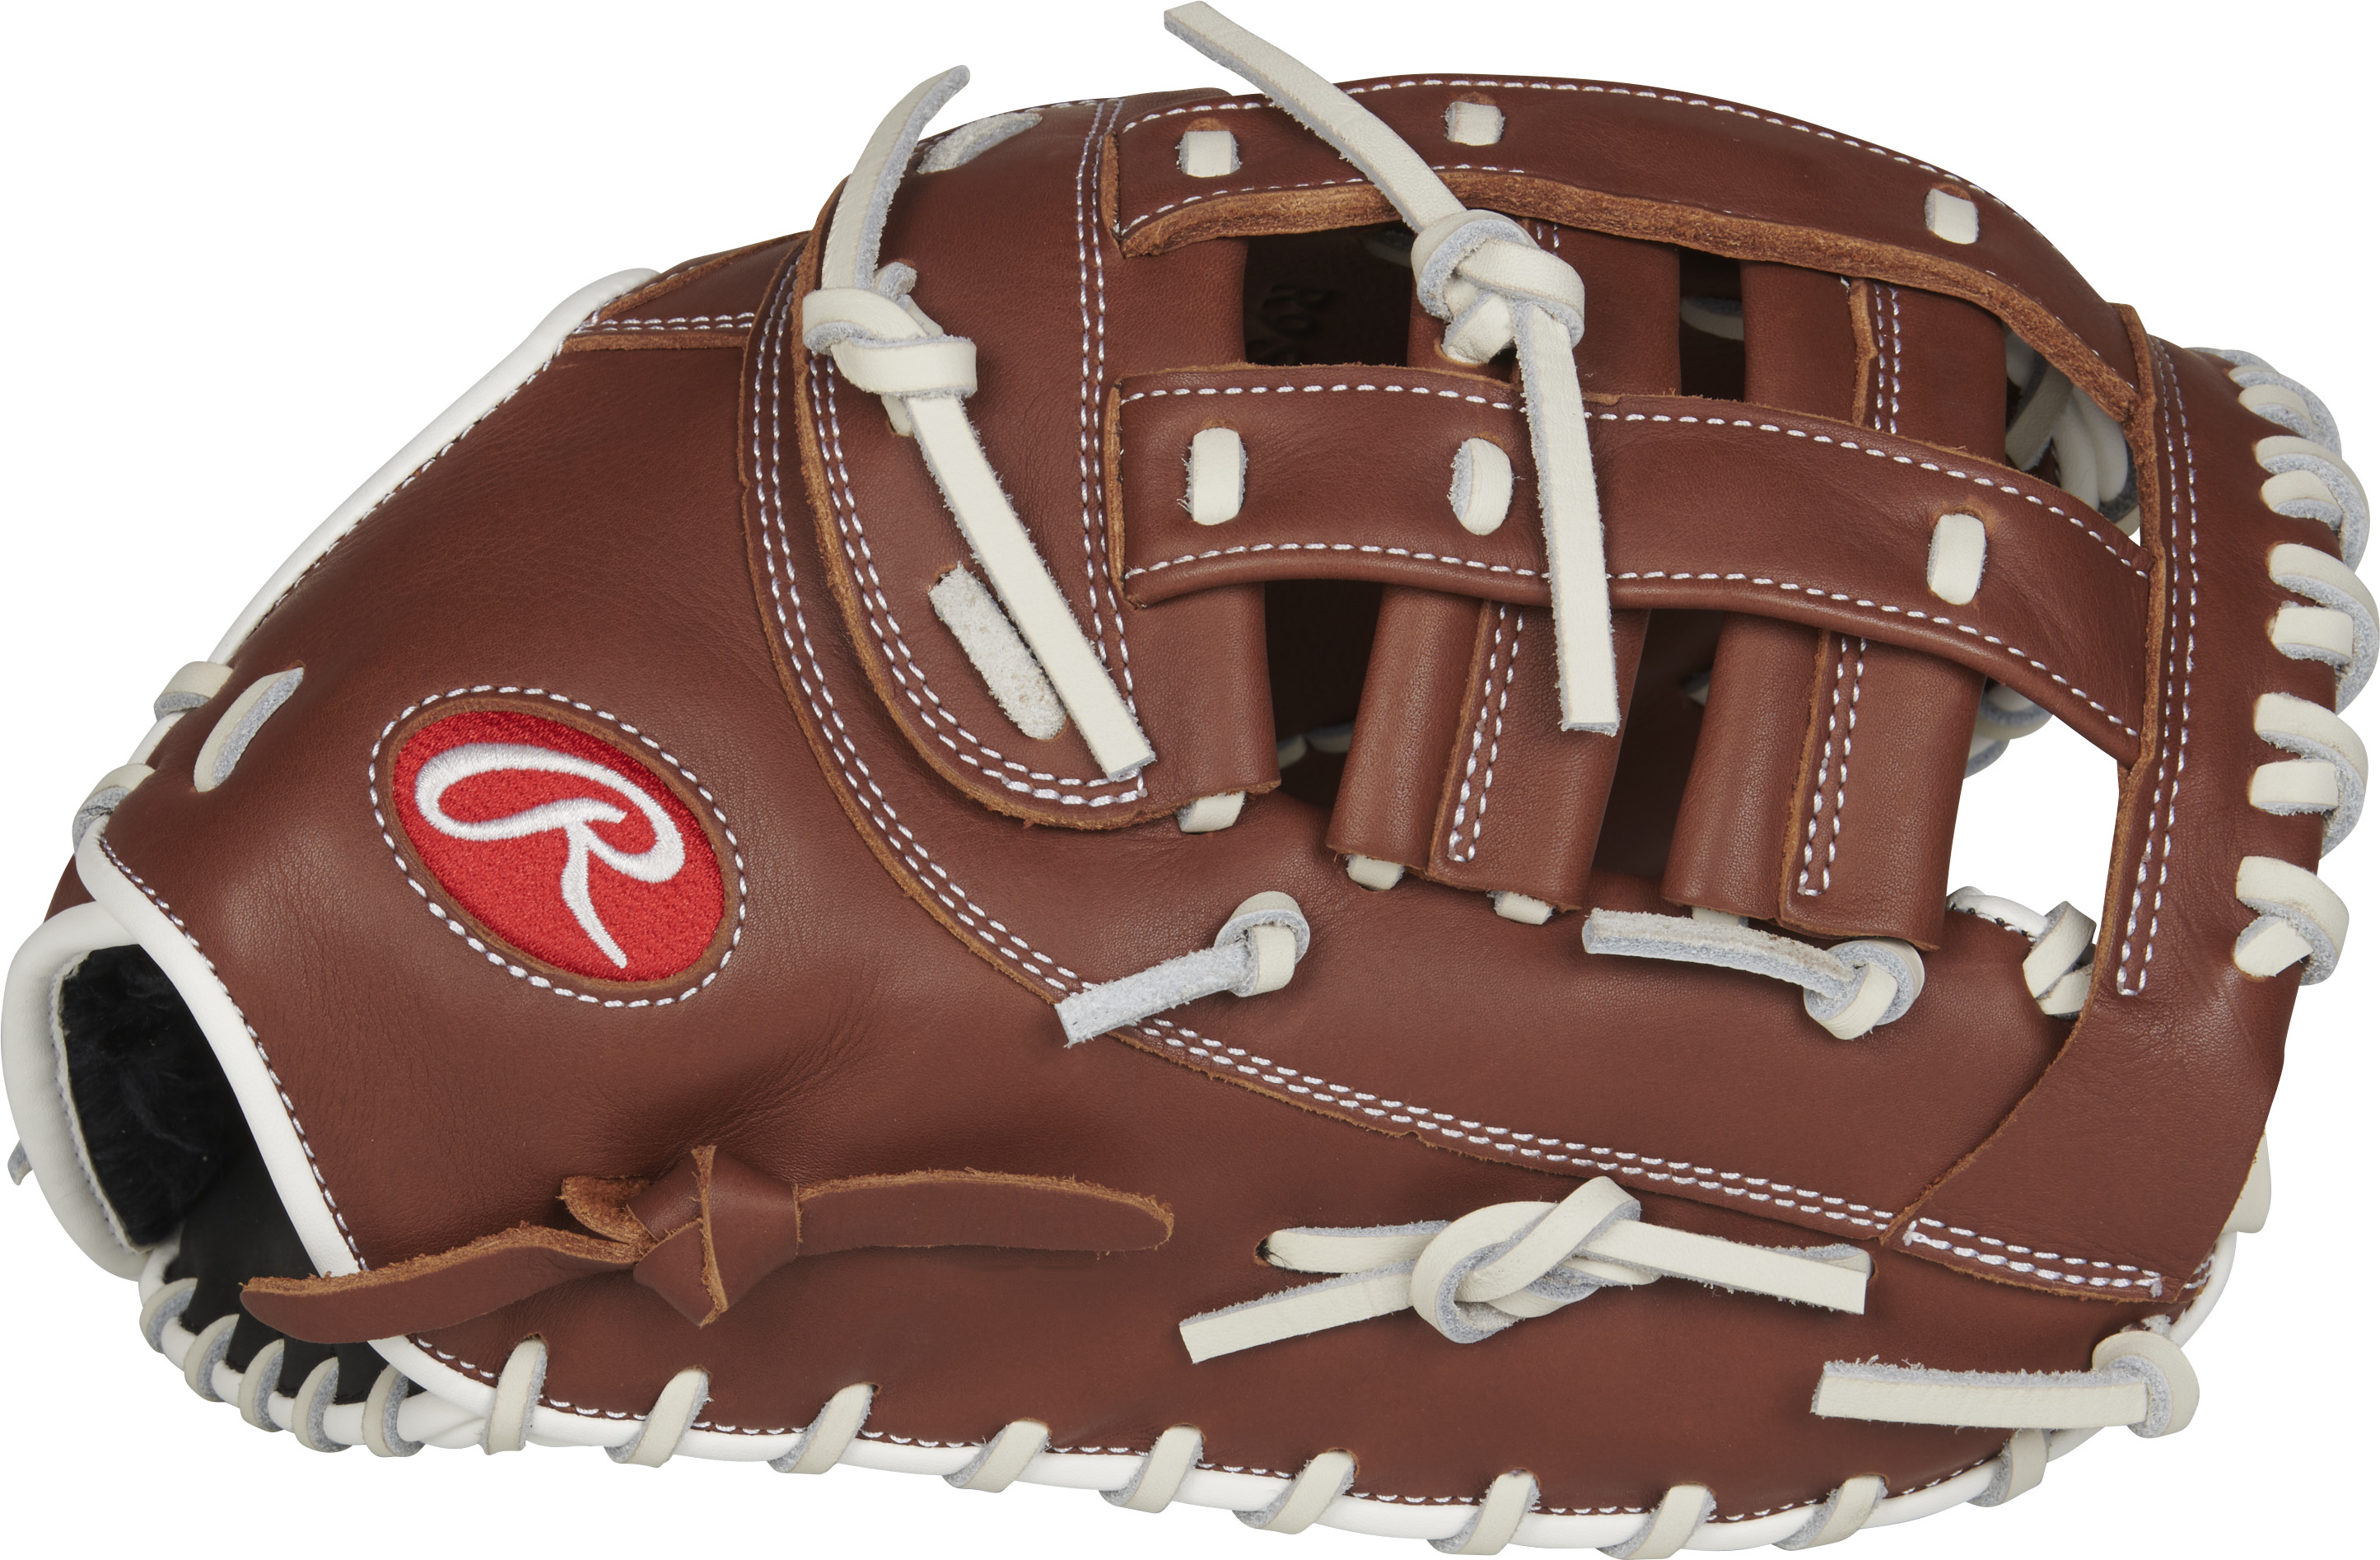 http://www.bestbatdeals.com/images/gloves/rawlings/R9SBFBM-17DB-3.jpg